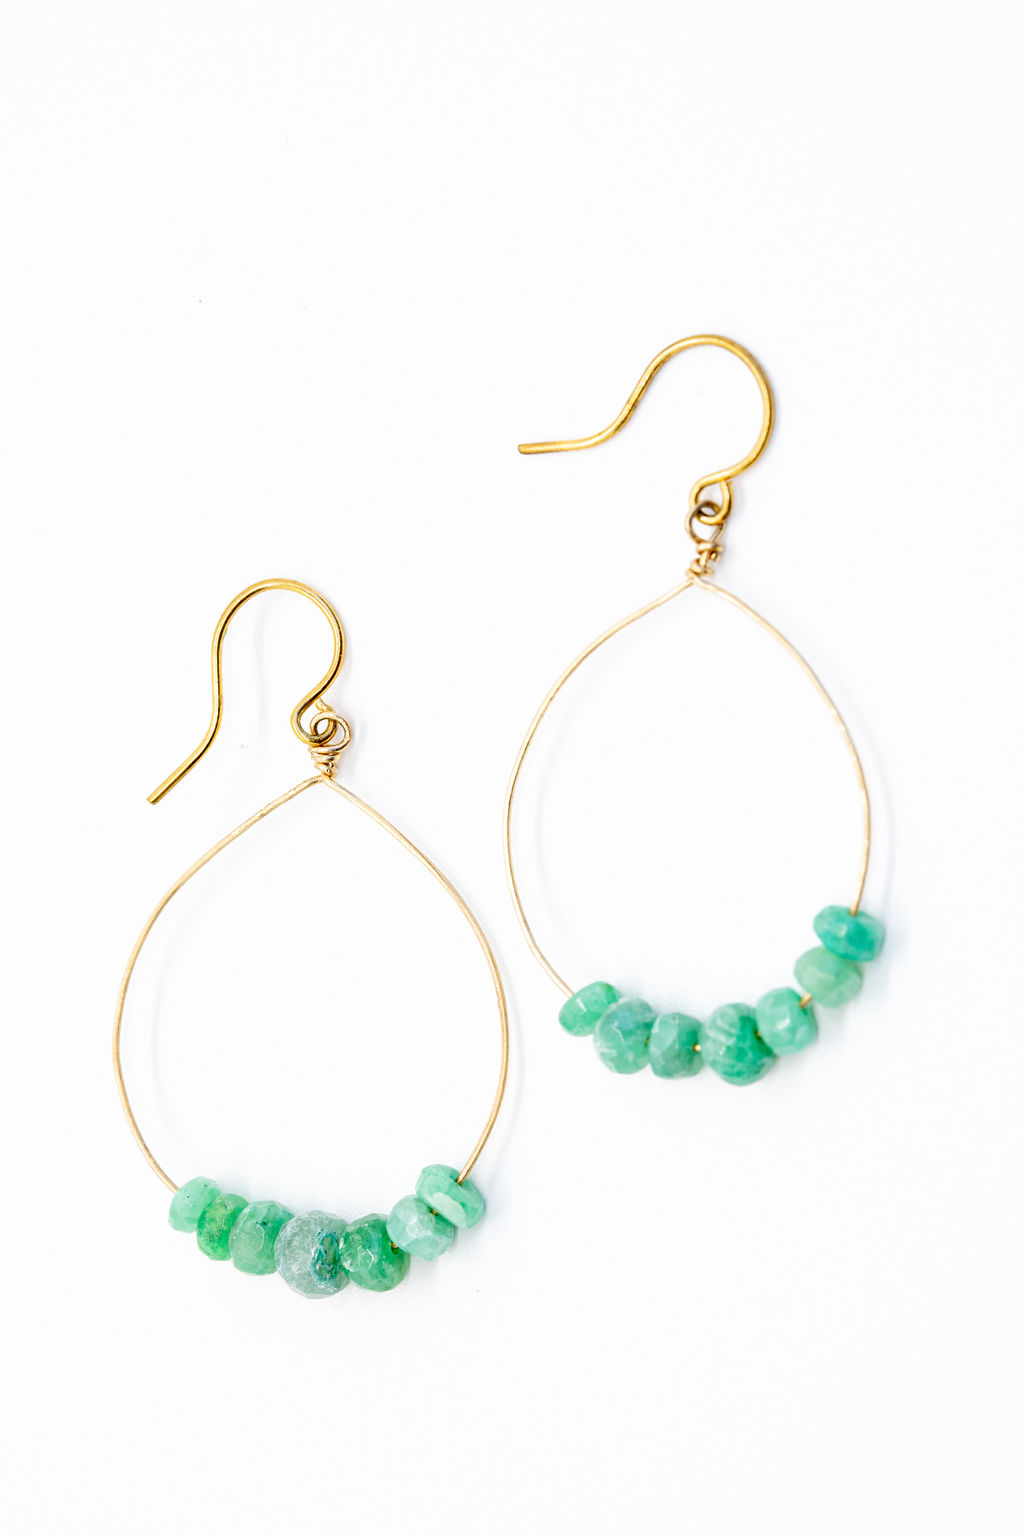 gold hoop earrings with emerald beads jadorn designs custom jewelry